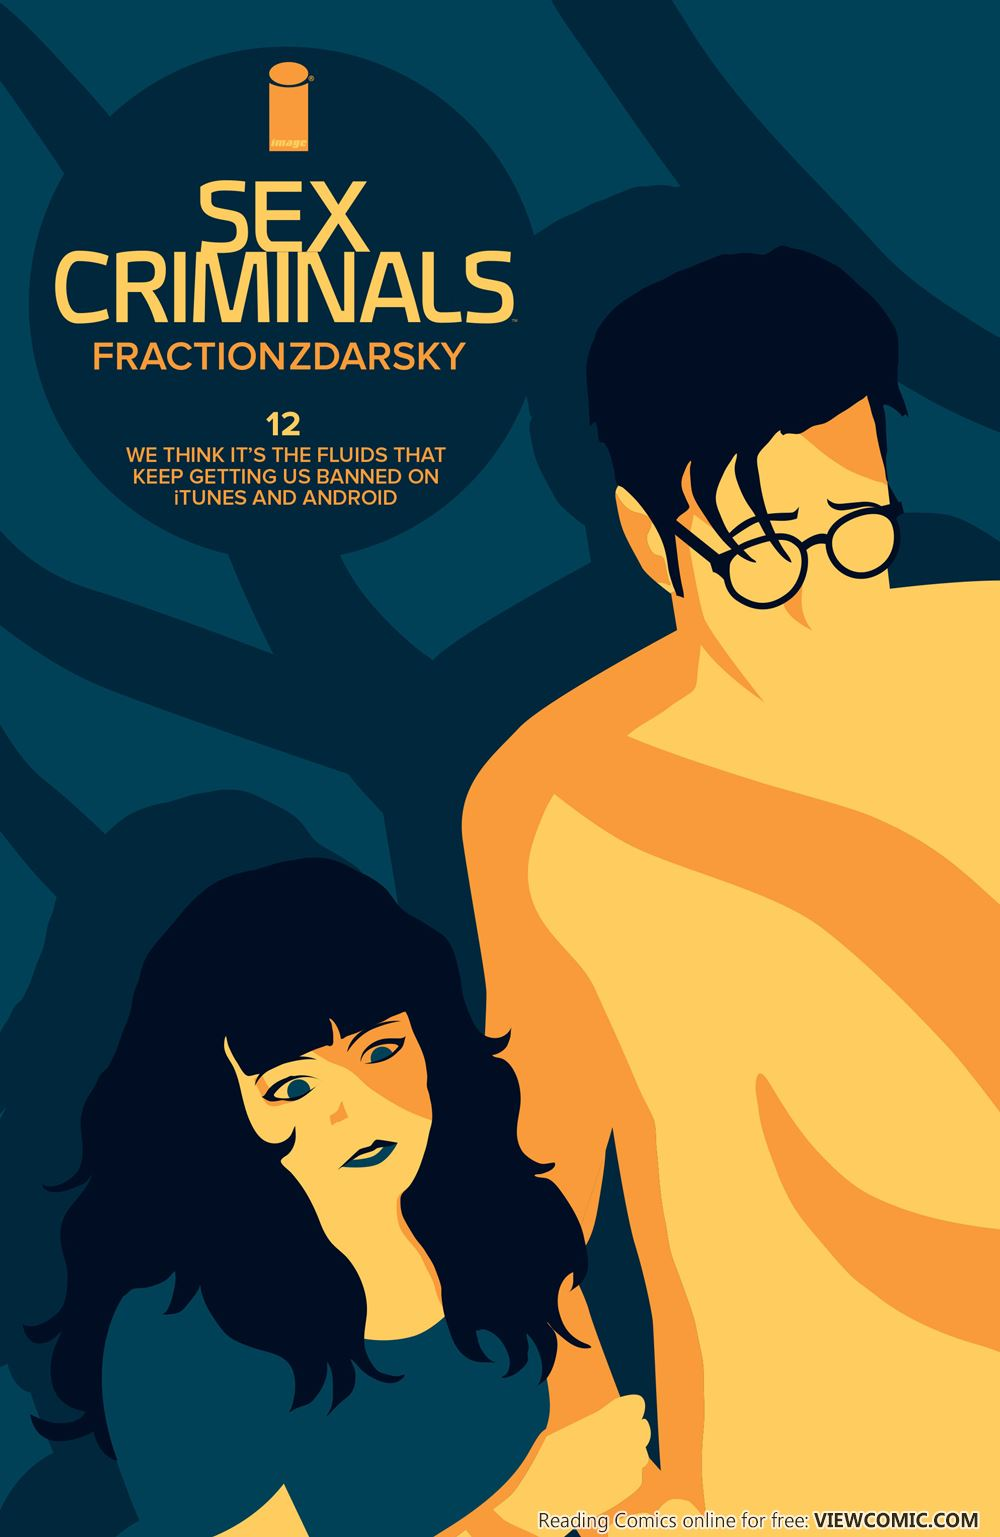 Sex Criminals - Fraction - Zdarsky - Visuels (2)